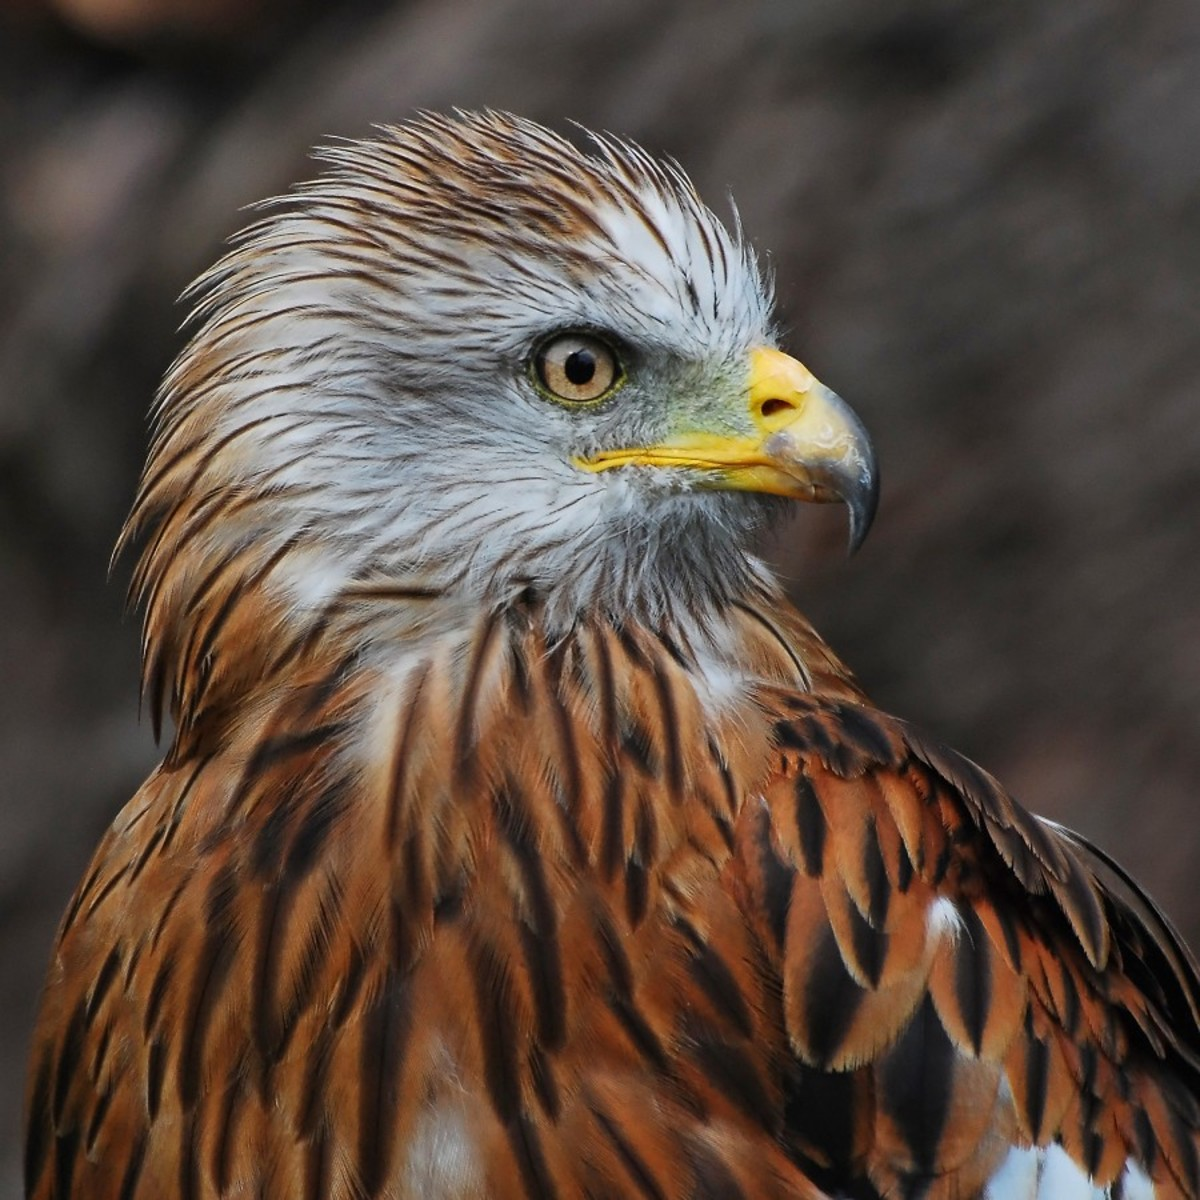 The red kite's beautiful colors flickr.com